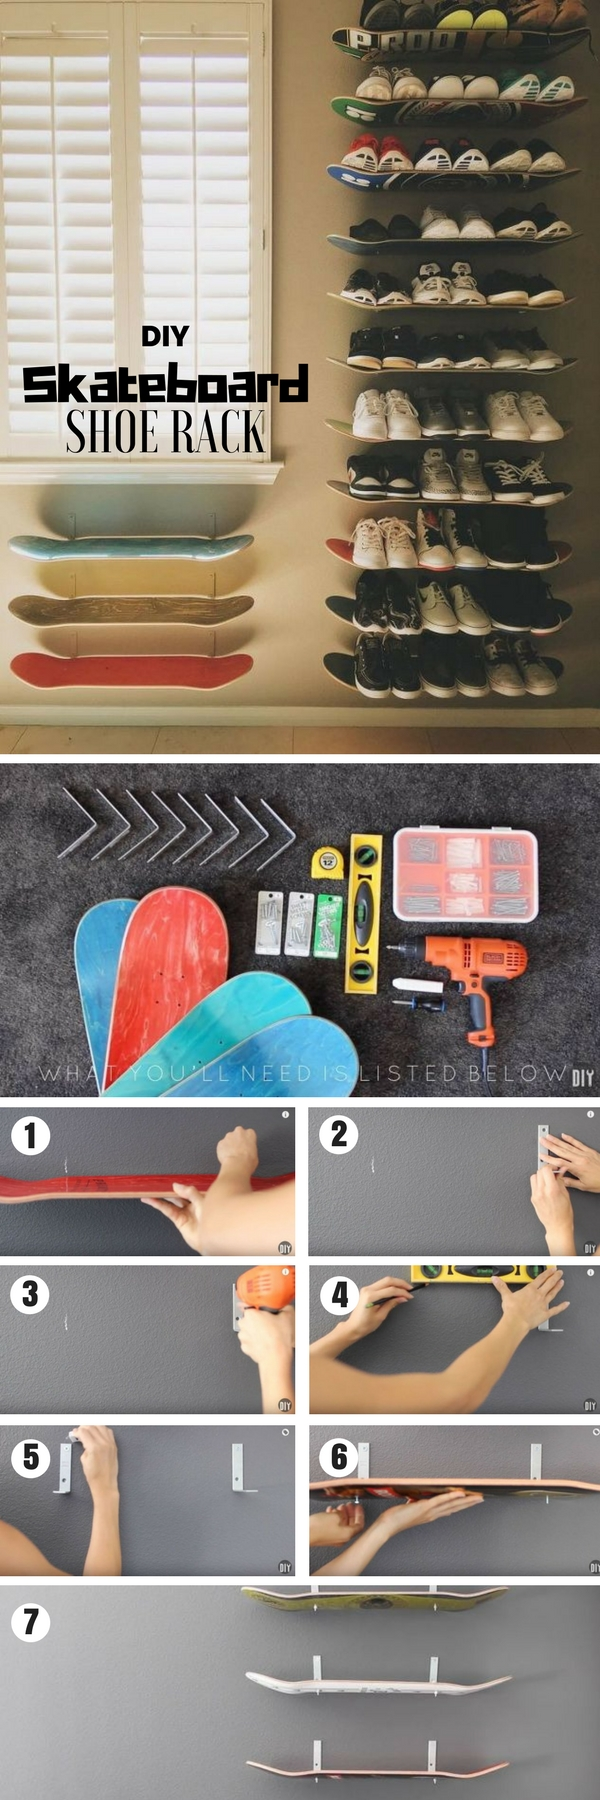 60+ Easy DIY Shoe Rack Ideas You Can Build on a Budget - Check out how to build a DIY shoe rack from old skateboards